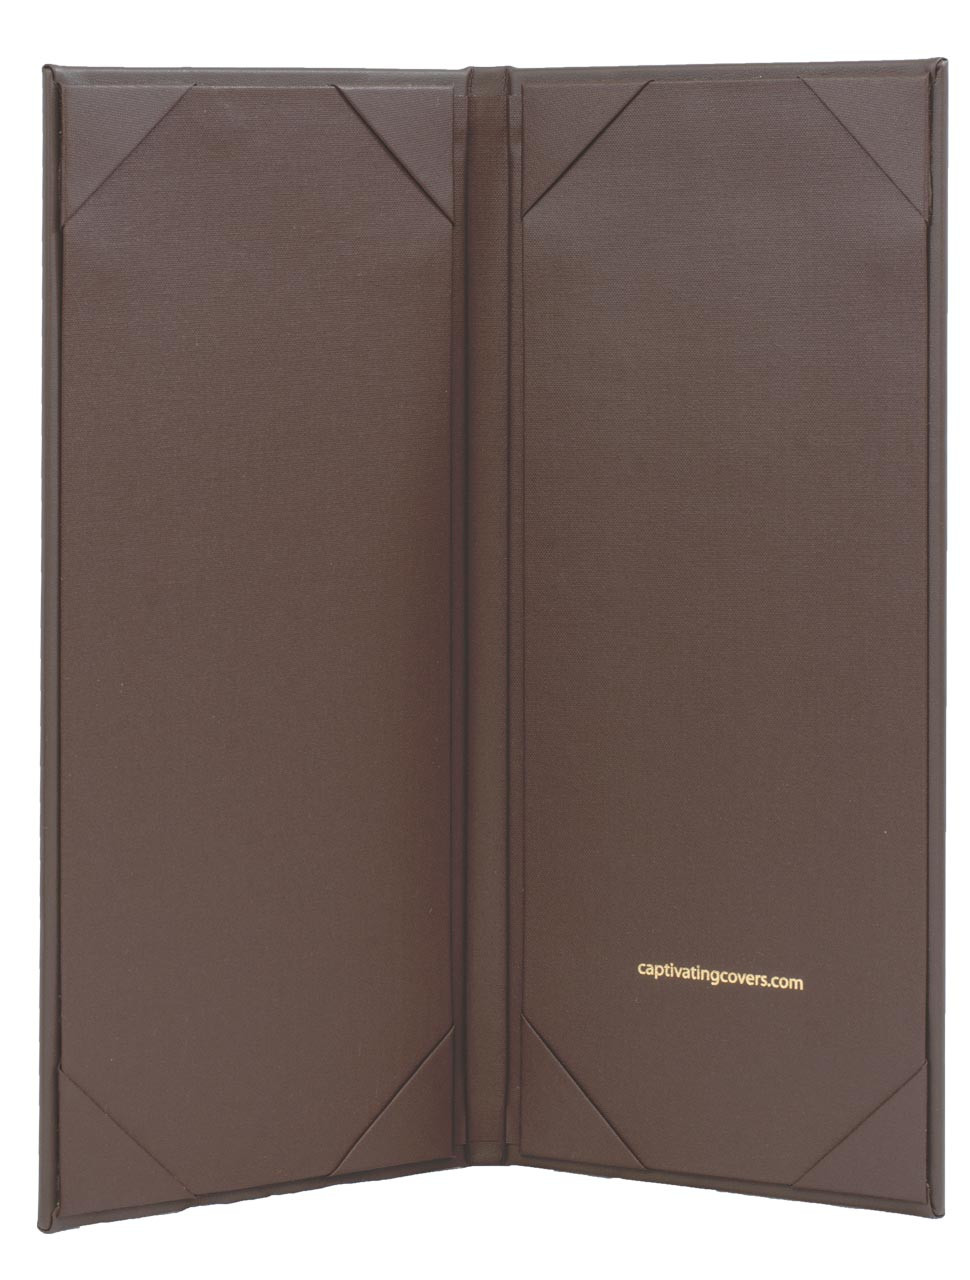 "4.25"" x 11"" Insert, 2-Panel Menu Cover Dark Brown (inside)"